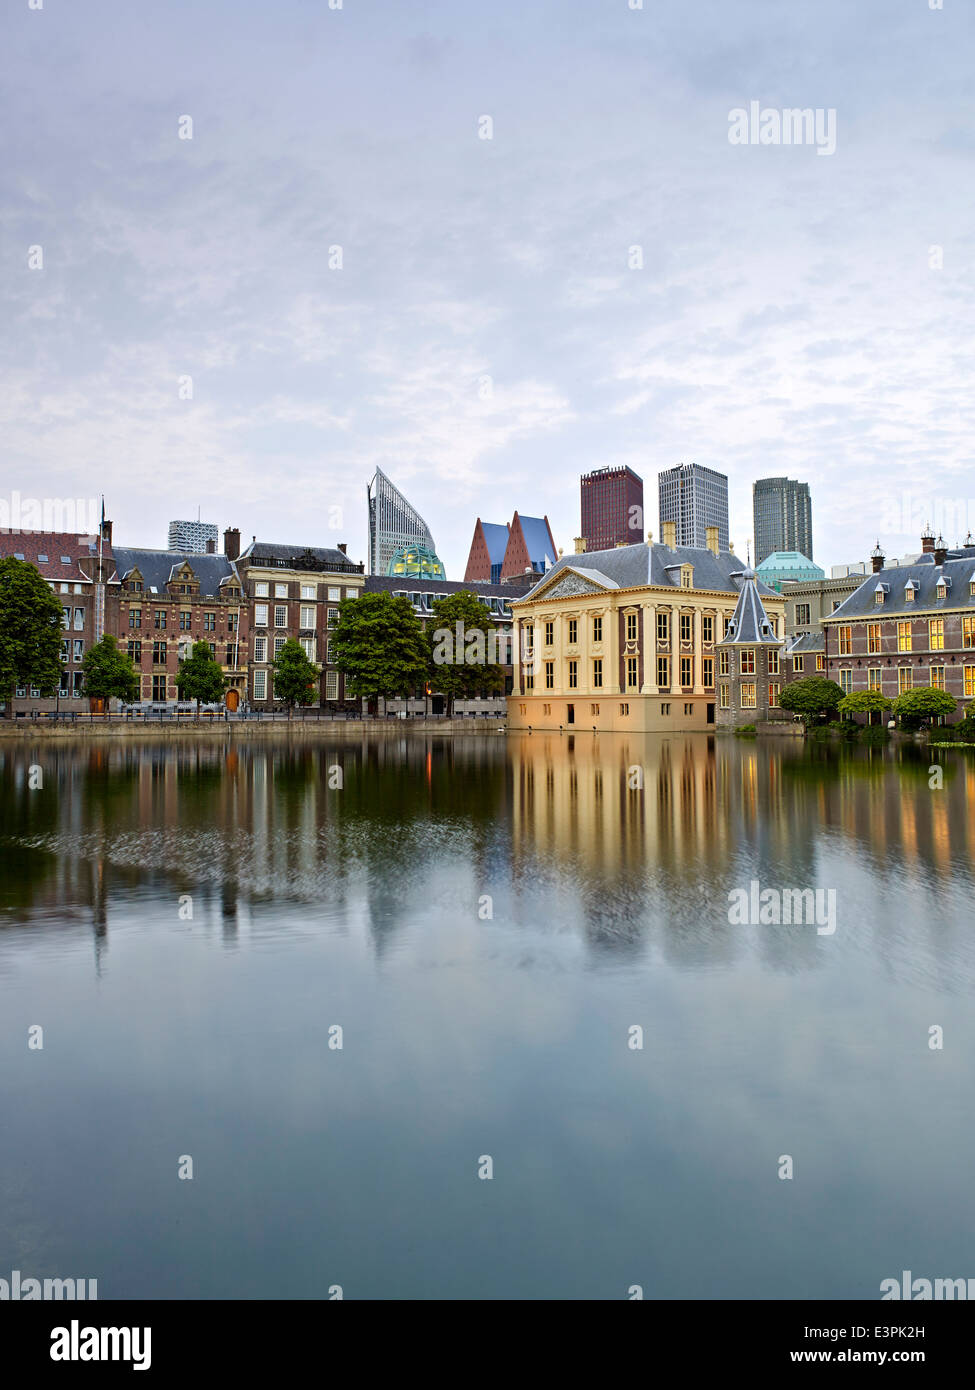 Art museum The Mauritshuis and Het Torentje, official office of the Prime Minister of the Netherlands at tthe Hofvijver - Stock Image